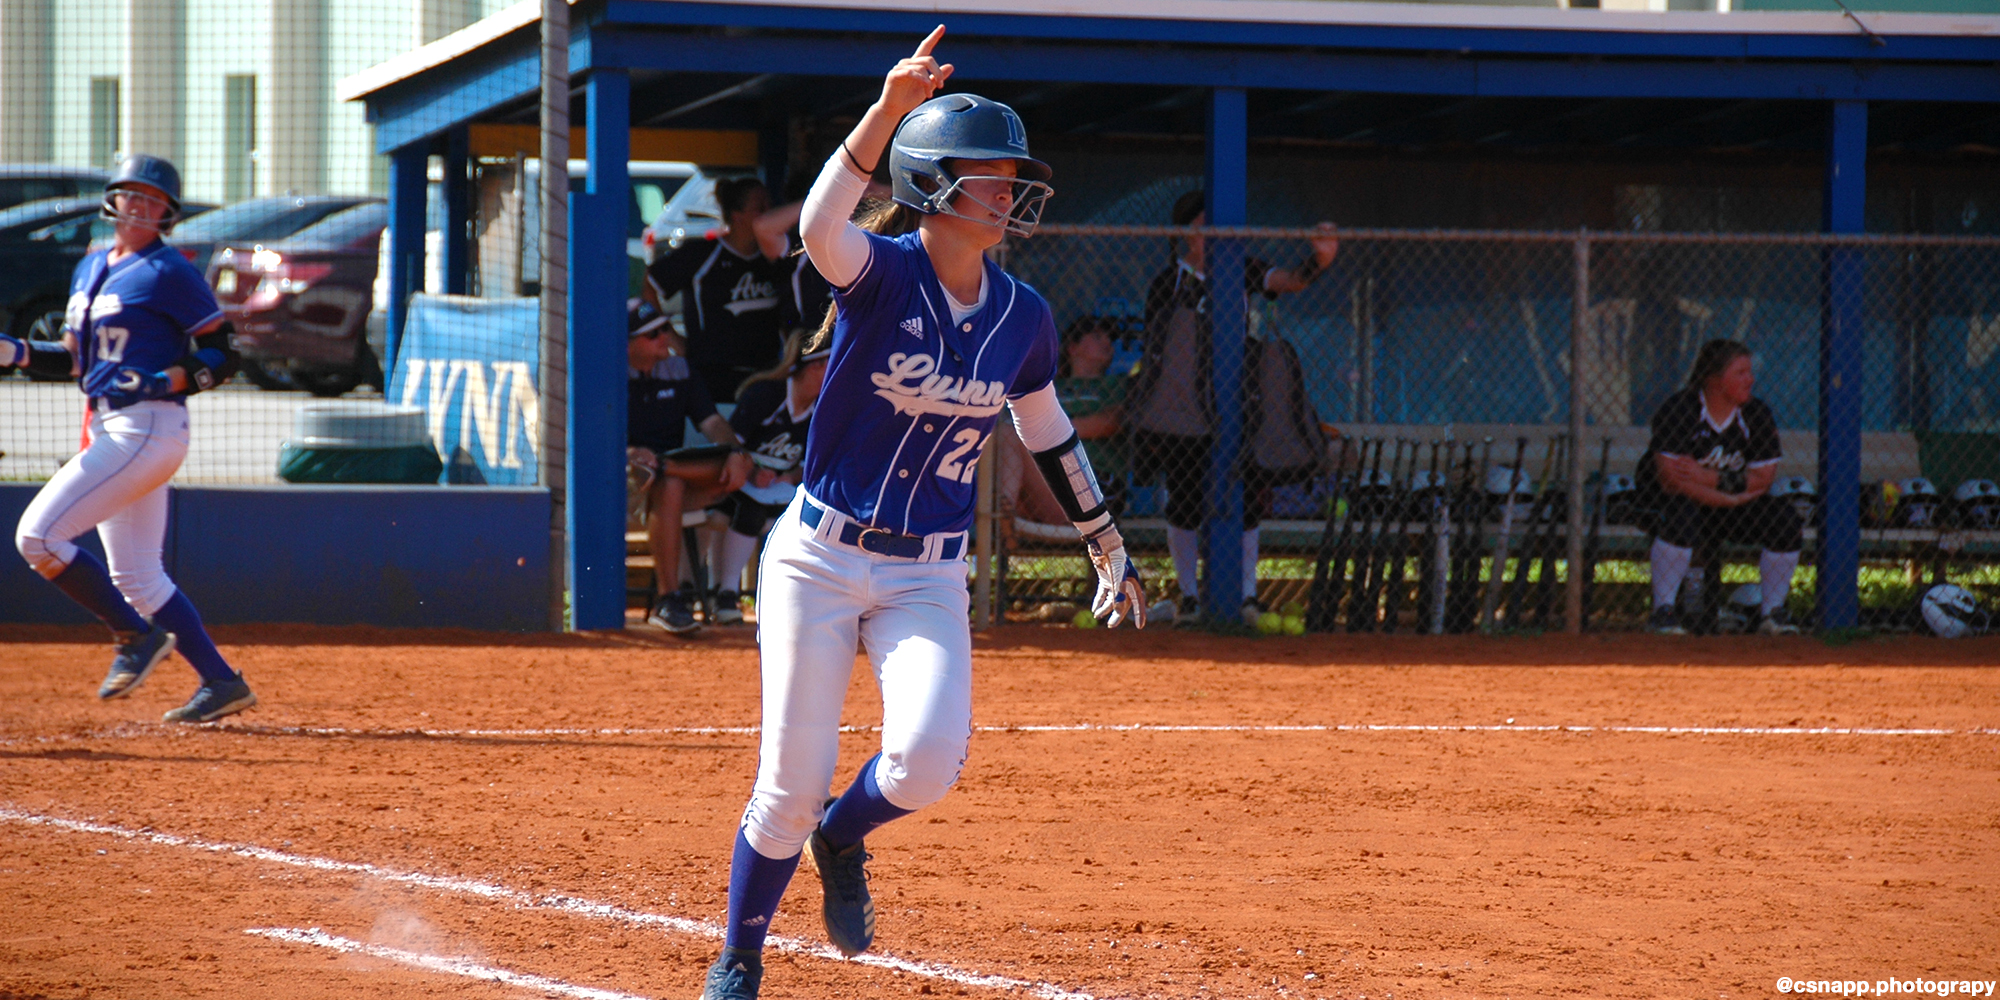 Devesa's Walk-Off Splits Softball Doubleheader